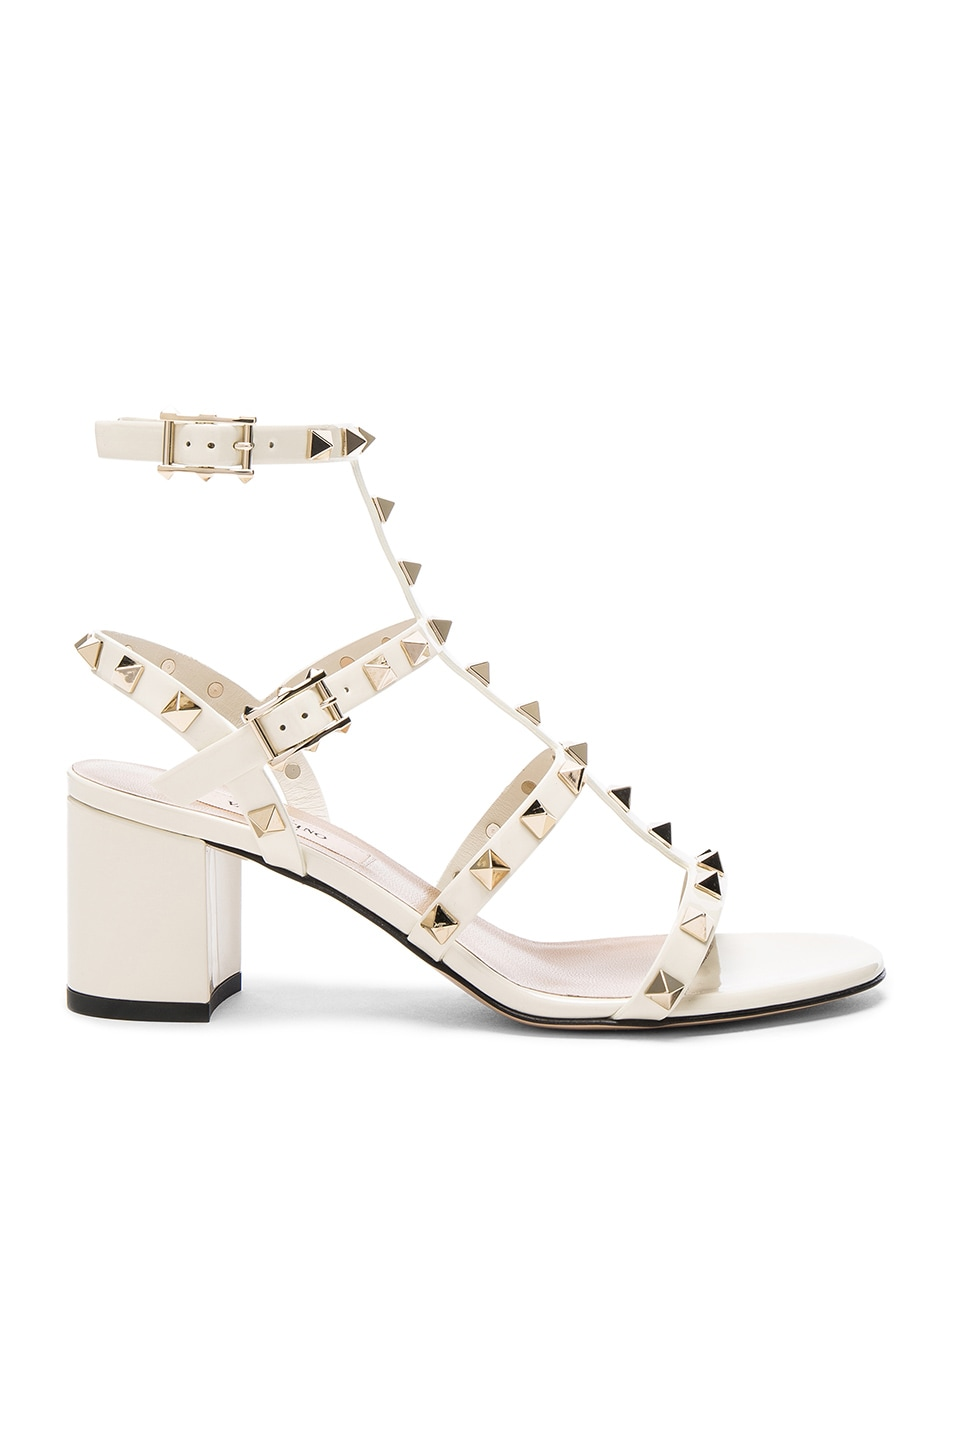 Image 1 of Valentino Patent Leather Rockstud Sandals in Light Ivory